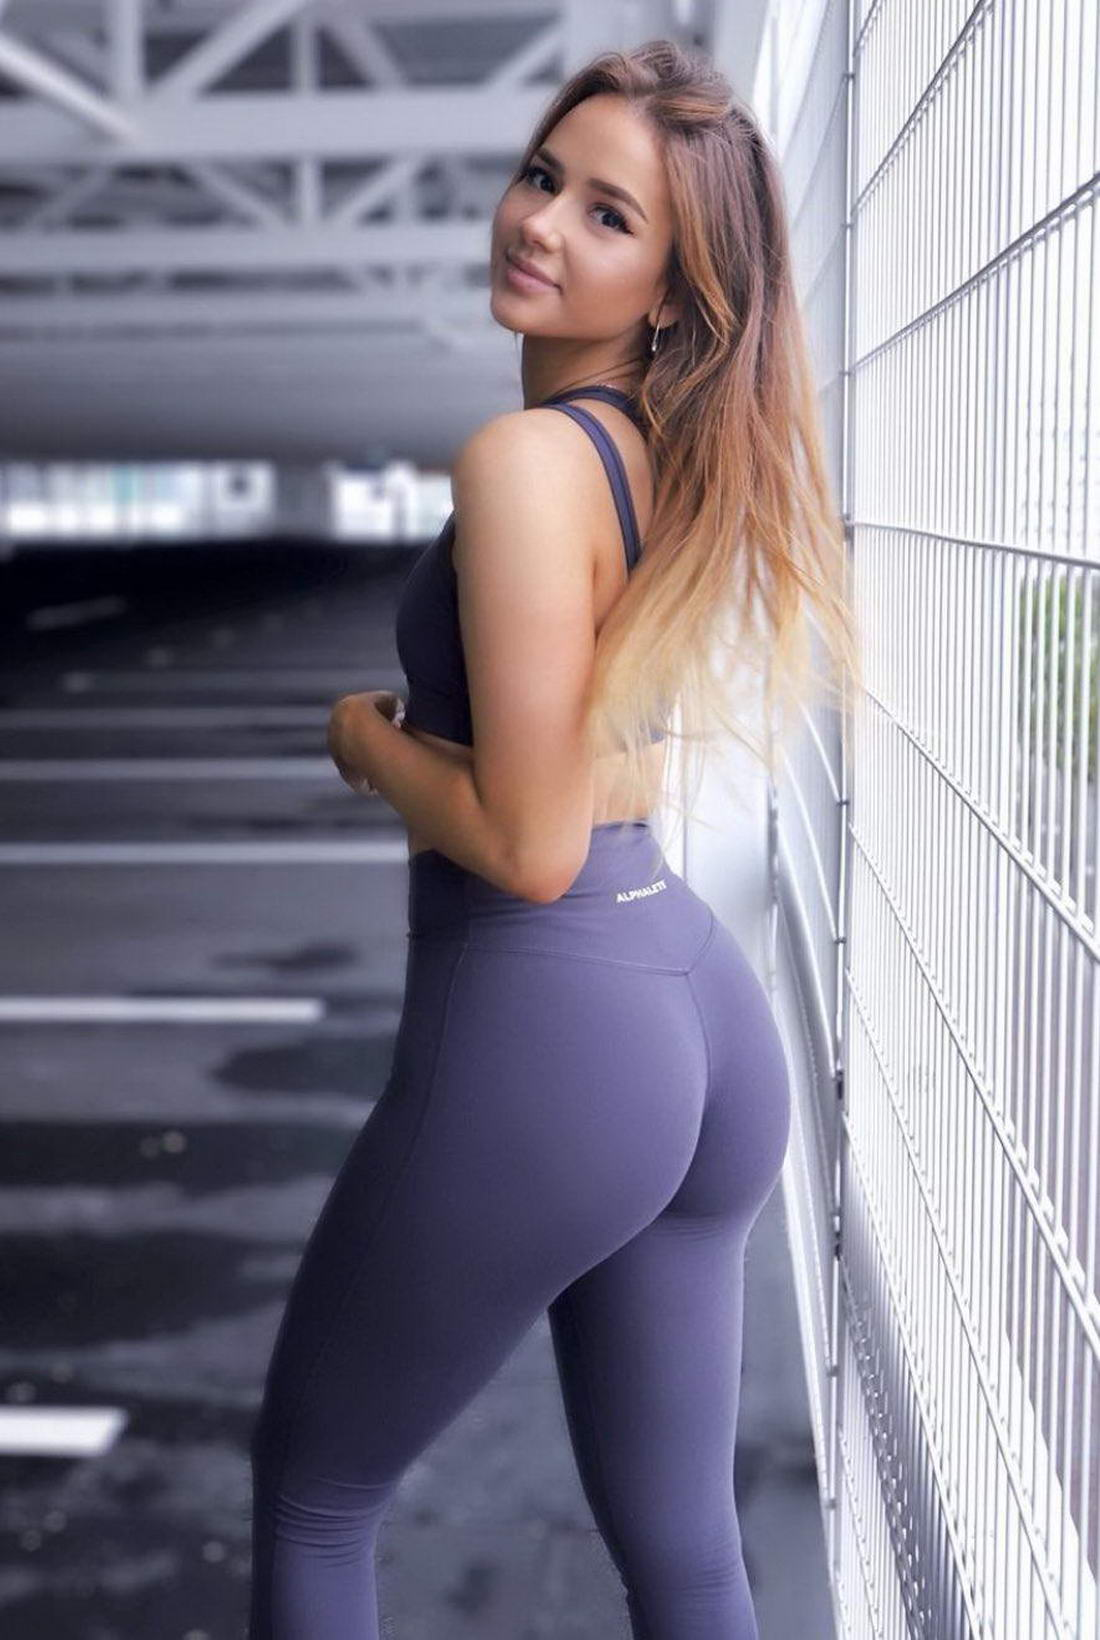 Hot Girls In Yoga Pants (44 Photos)